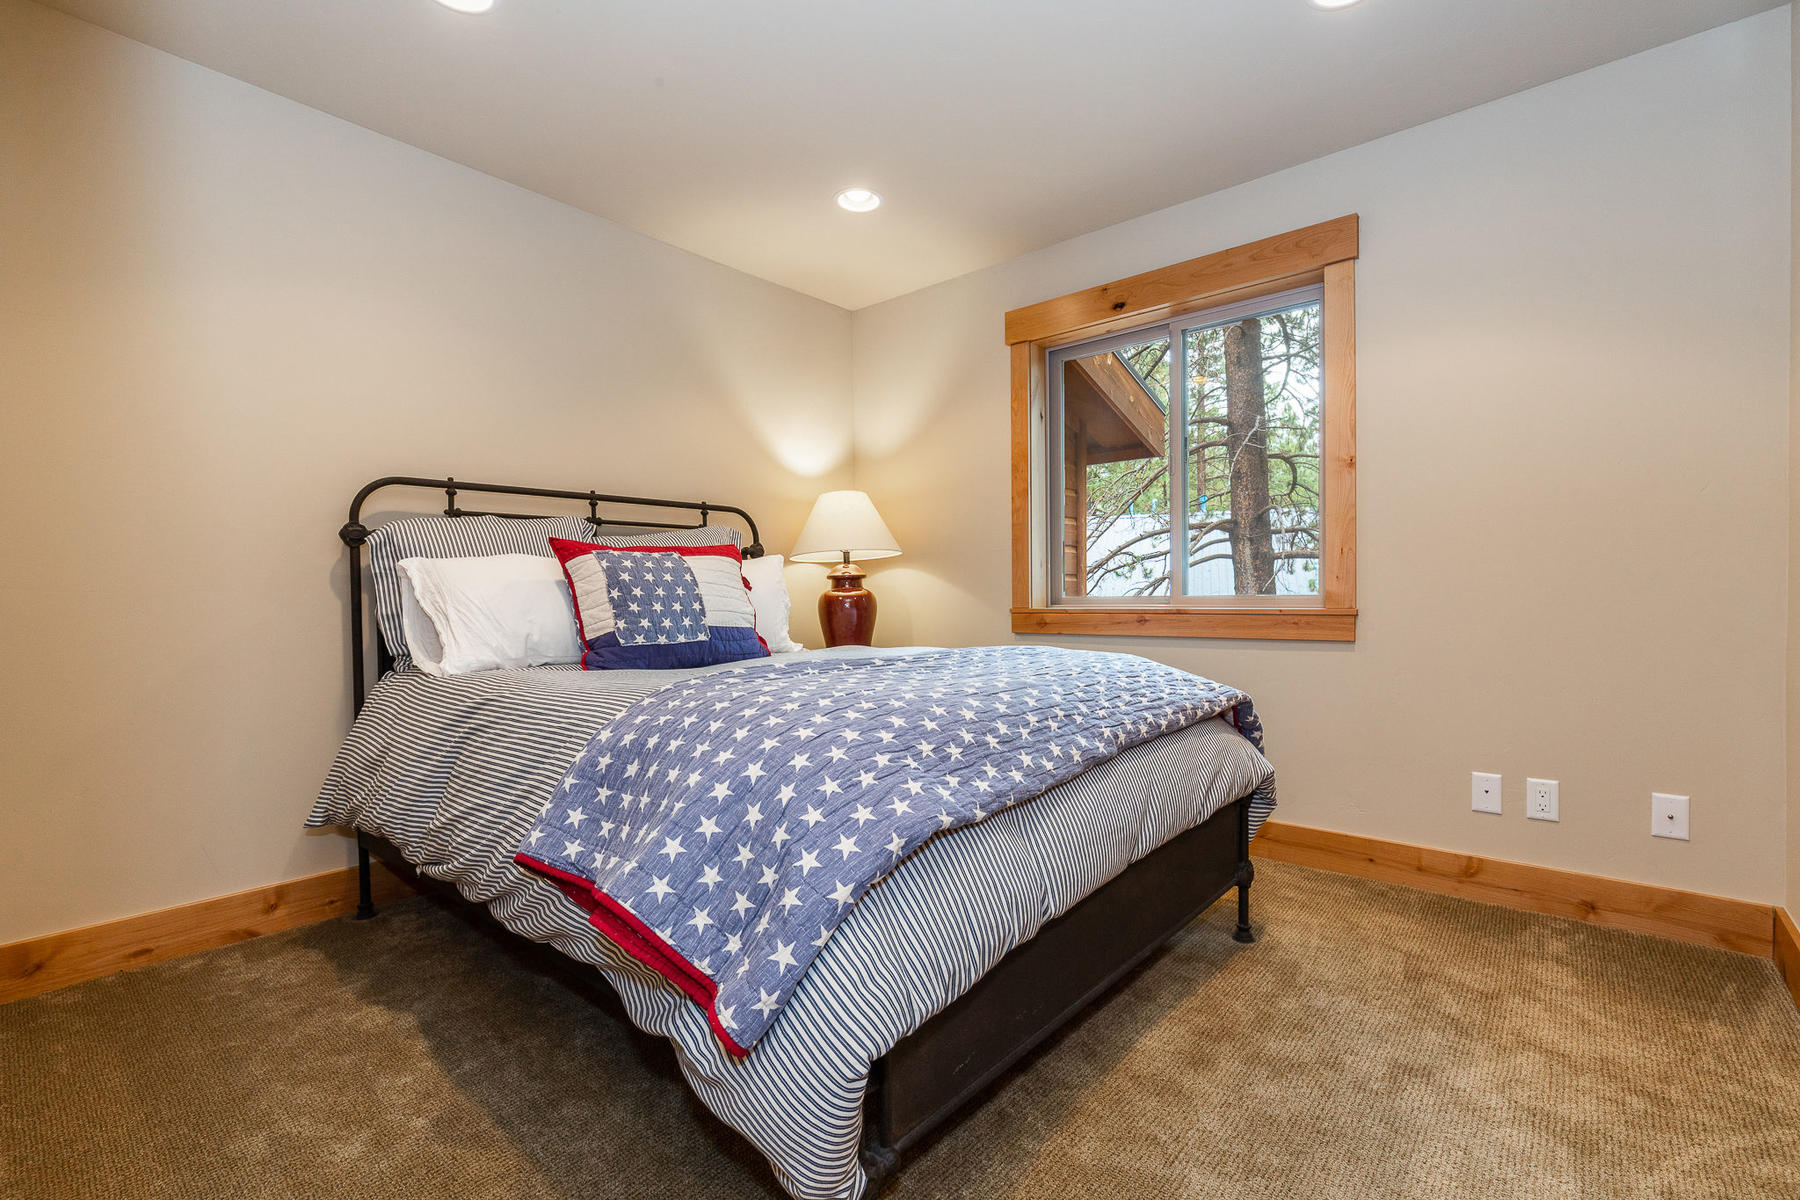 Additional photo for property listing at 14791 Tyrol Road, Truckee CA 14791 Tyrol Road Truckee, California 96161 United States